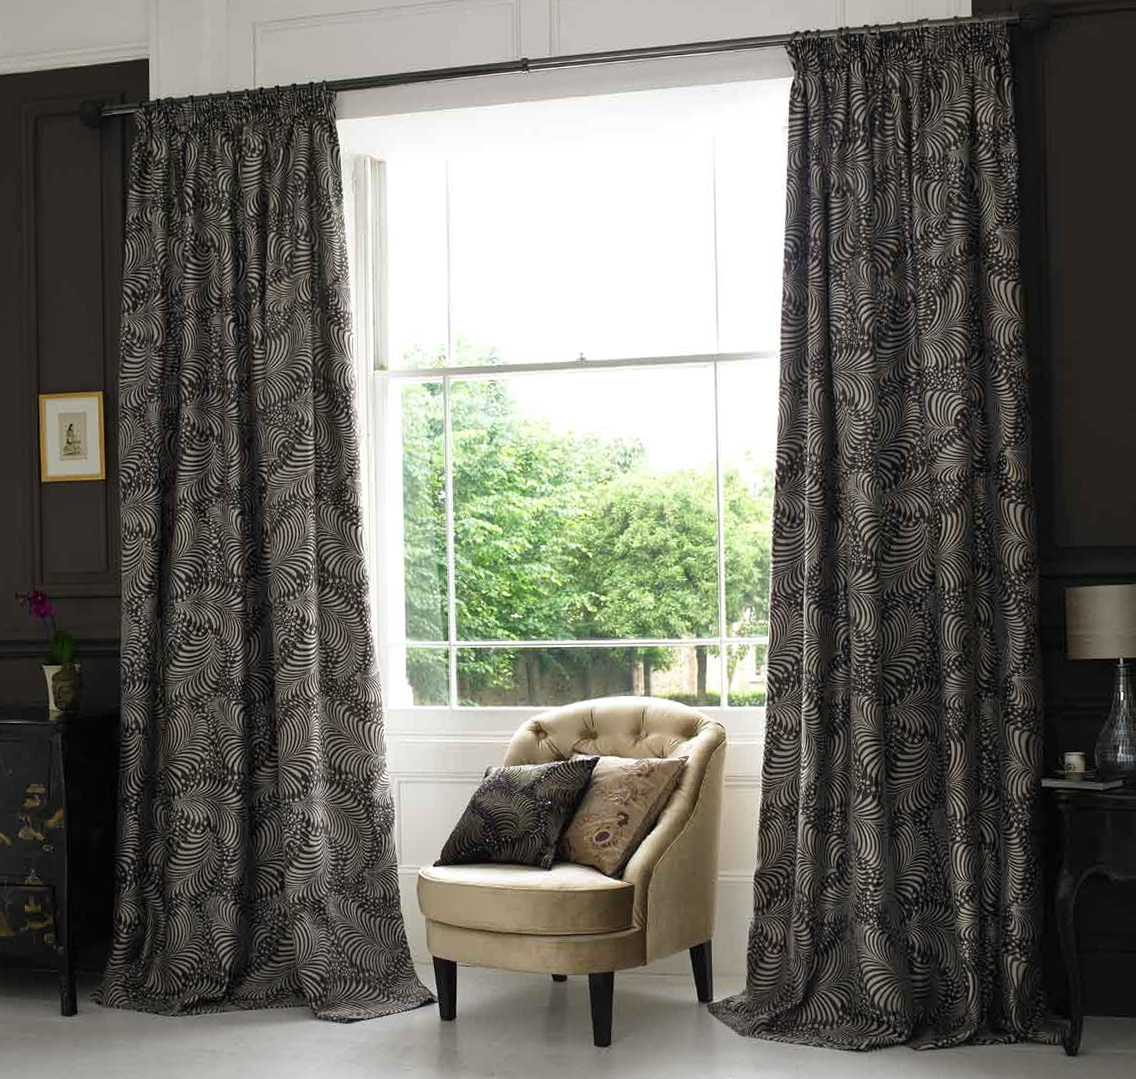 Black bedroom window curtains home design ideas for Curtains for bedroom windows with designs